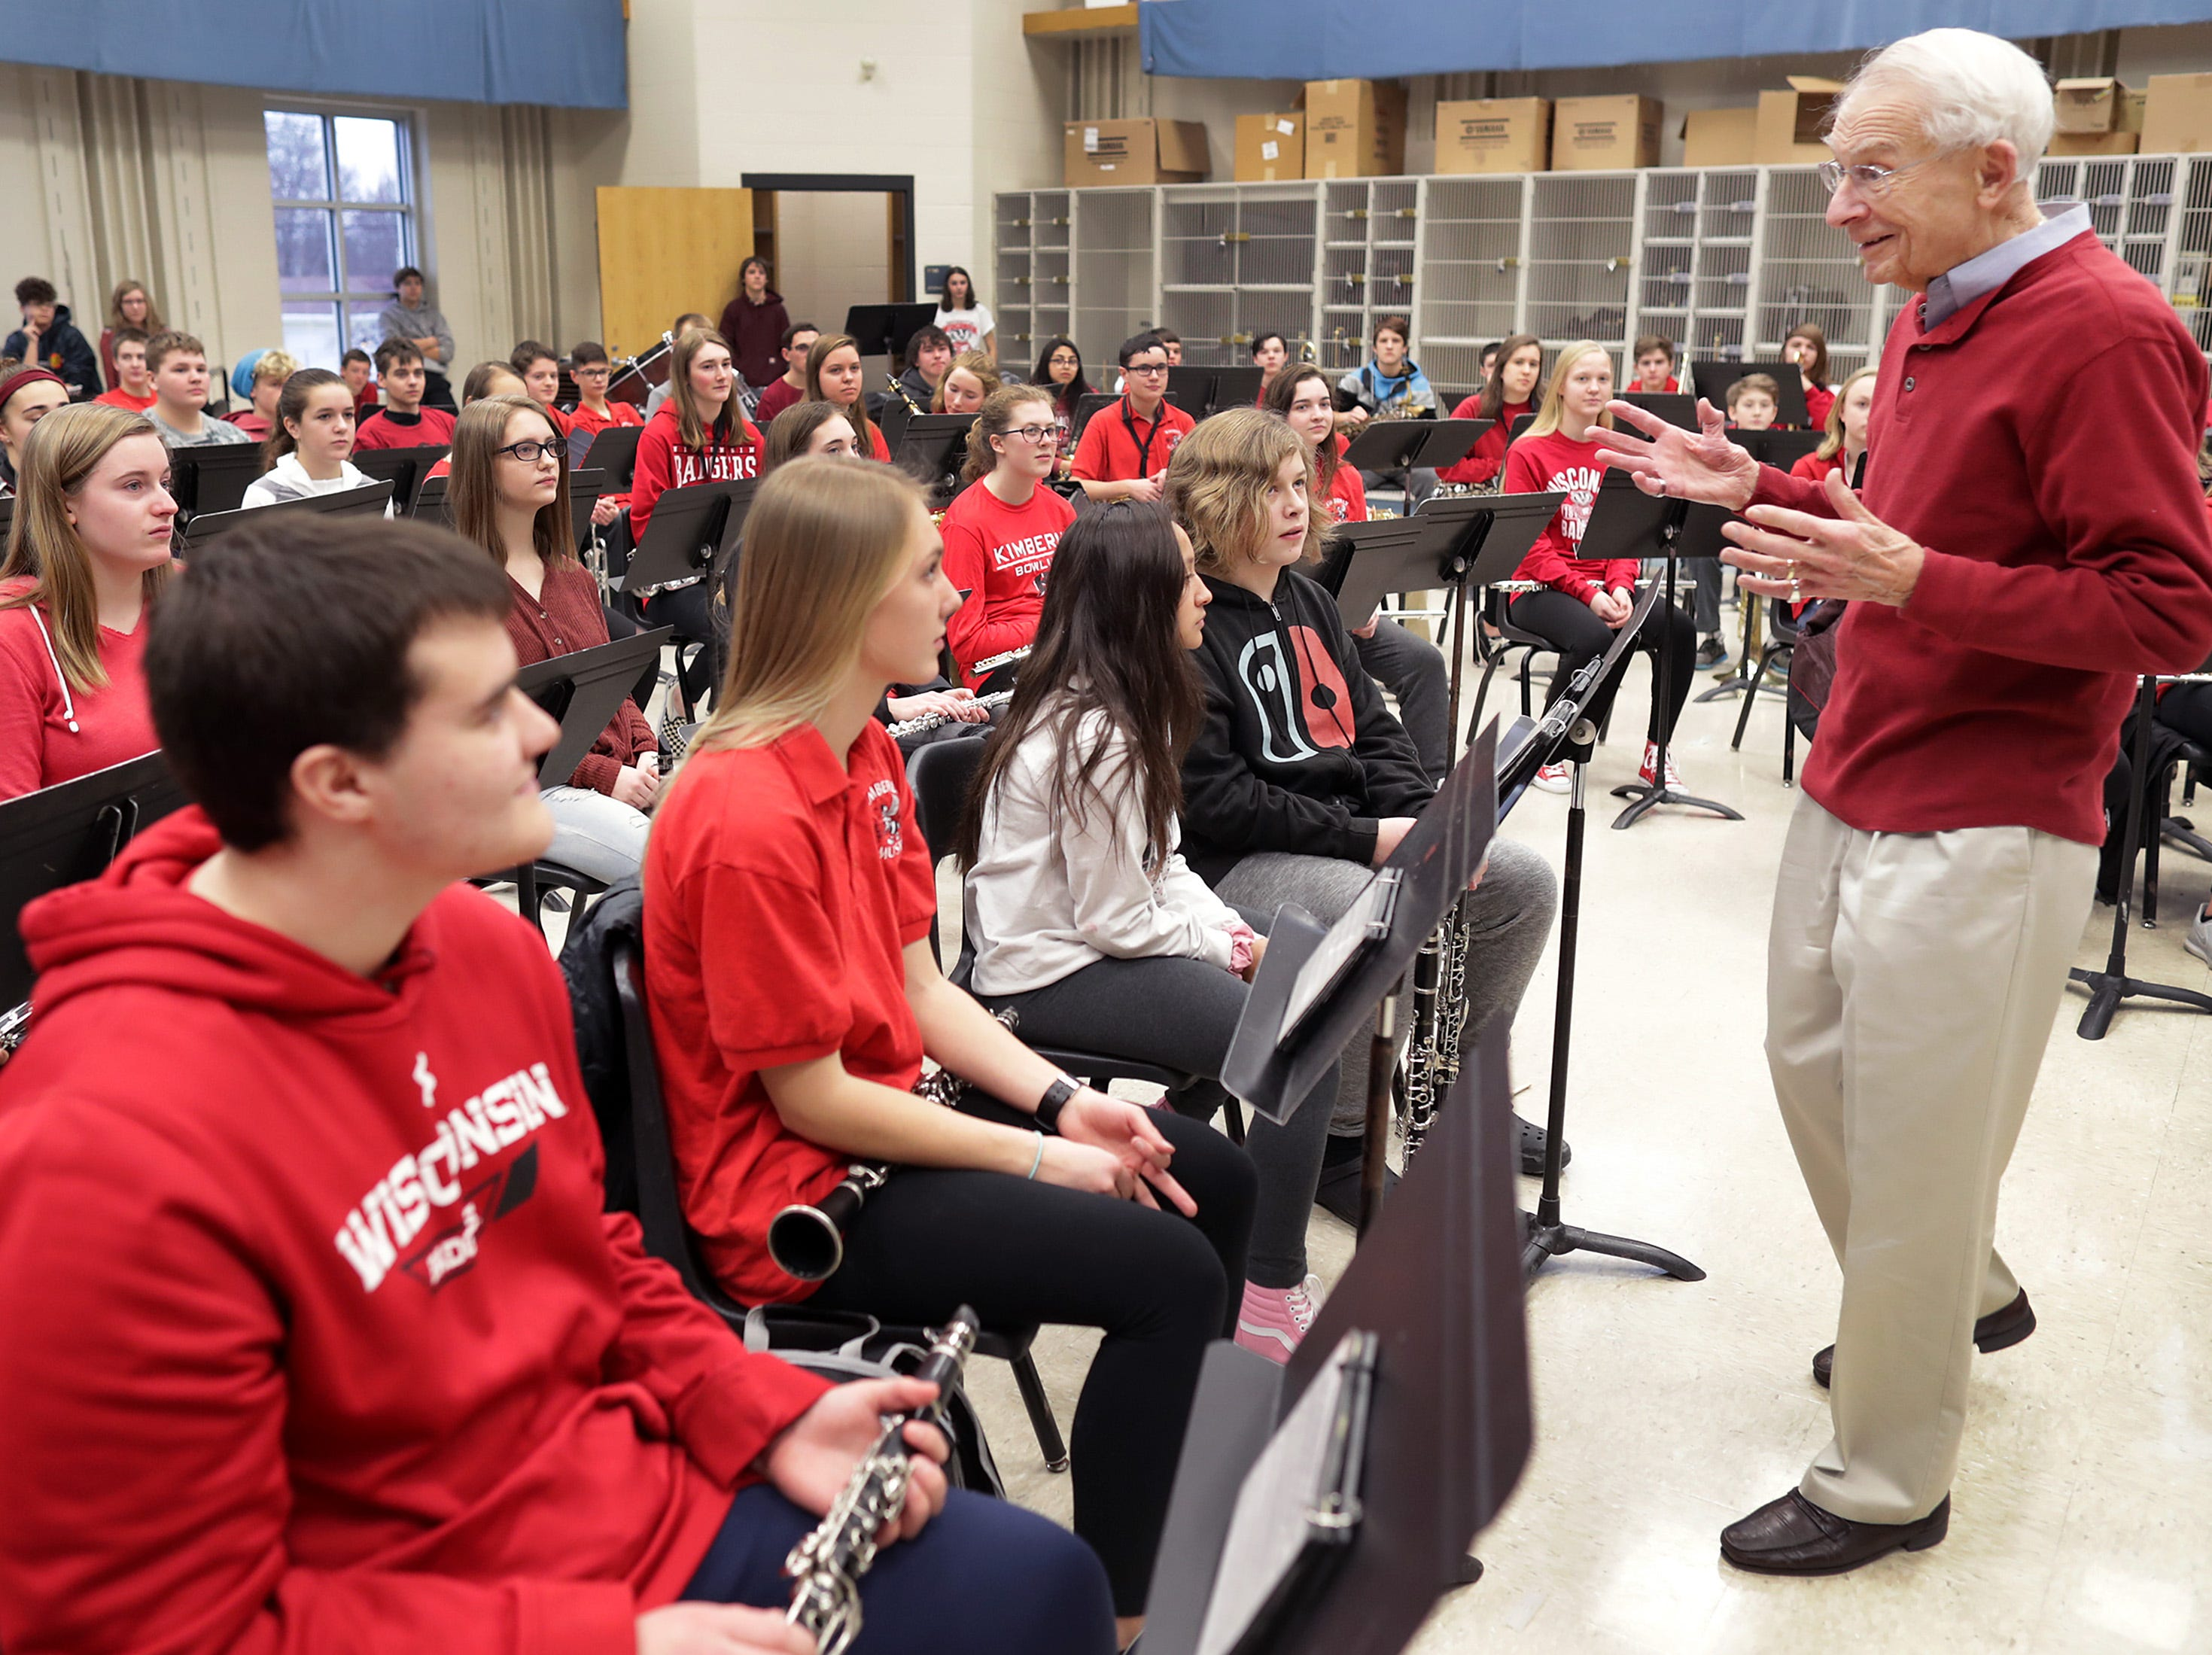 Legendary University of Wisconsin band leader Mike Leckrone talks with band students during a visit to Kimberly High School on Wednesday, January 15, 2019, in Kimberly, Wis.